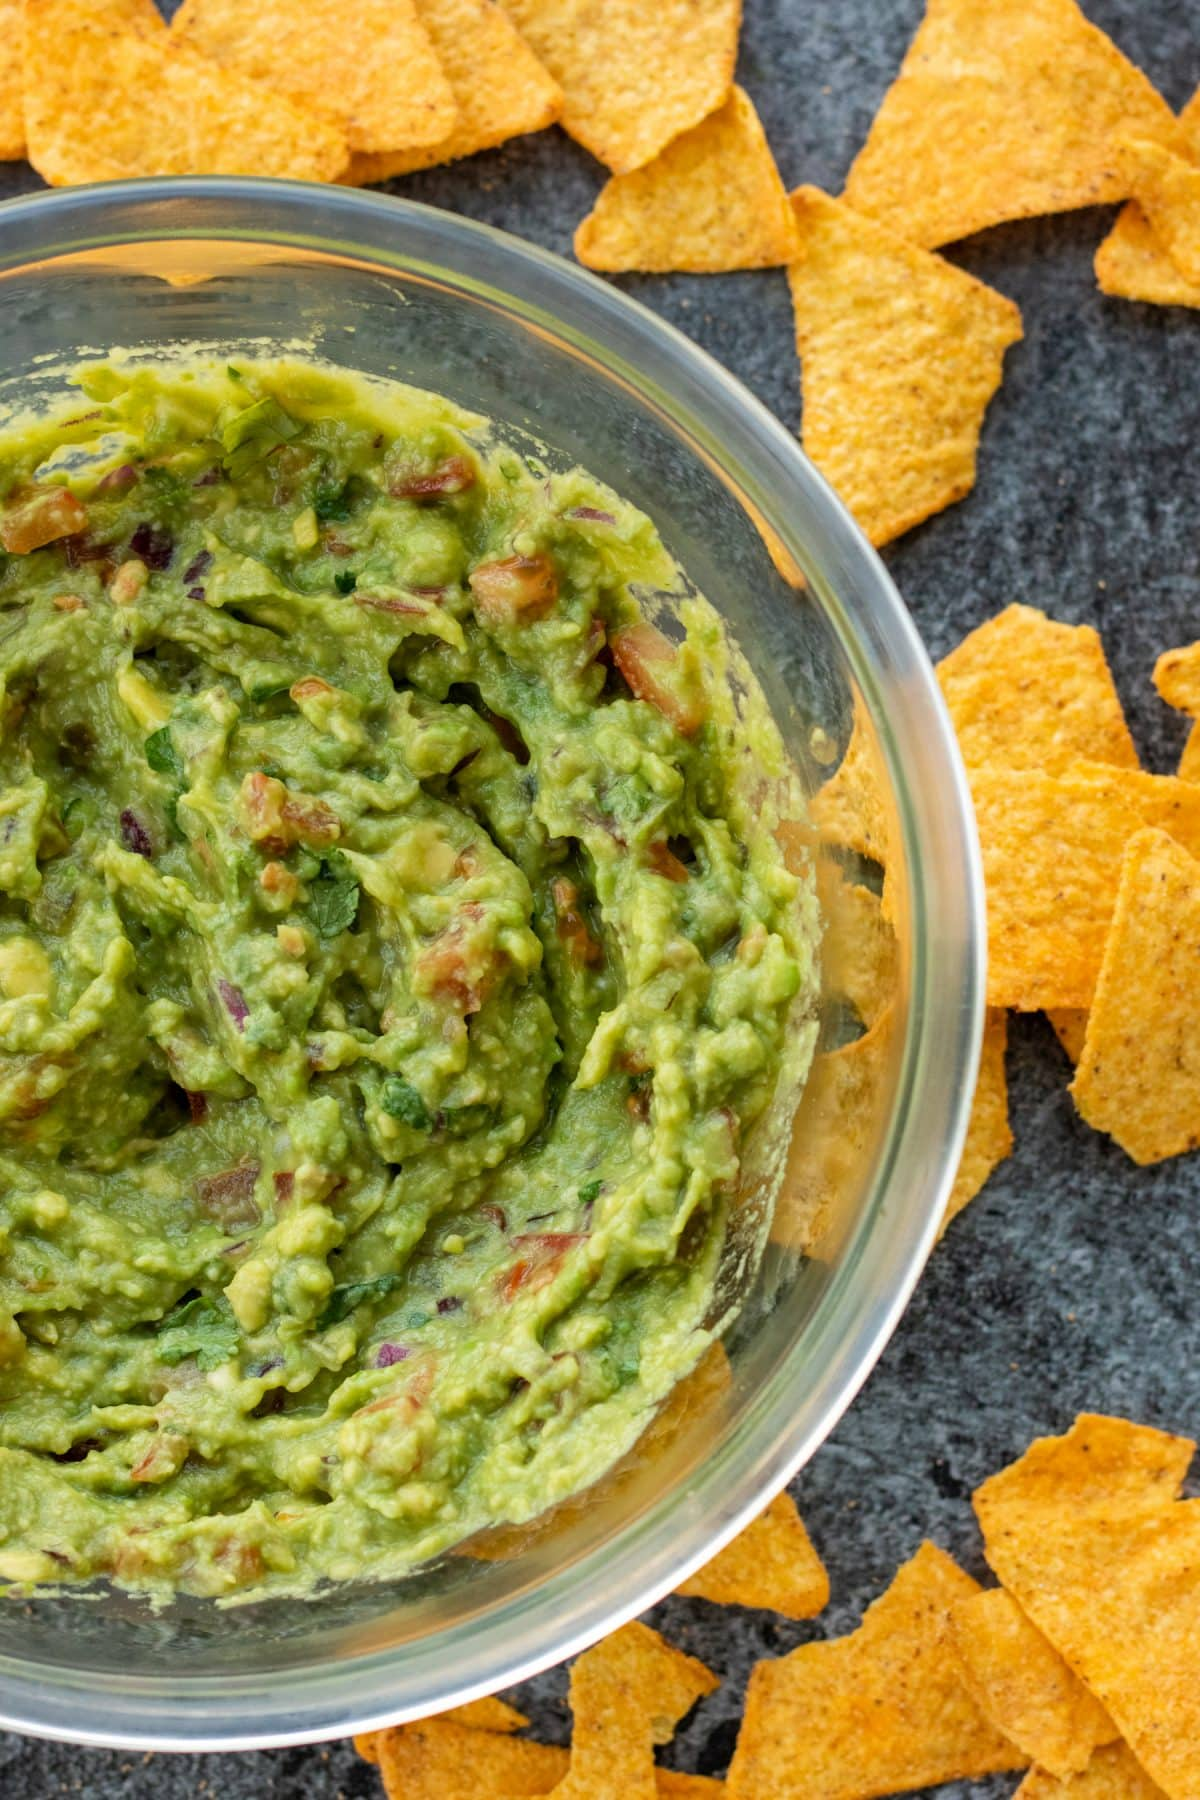 top down view of a bowl of guacamole surrounded by tortilla chips